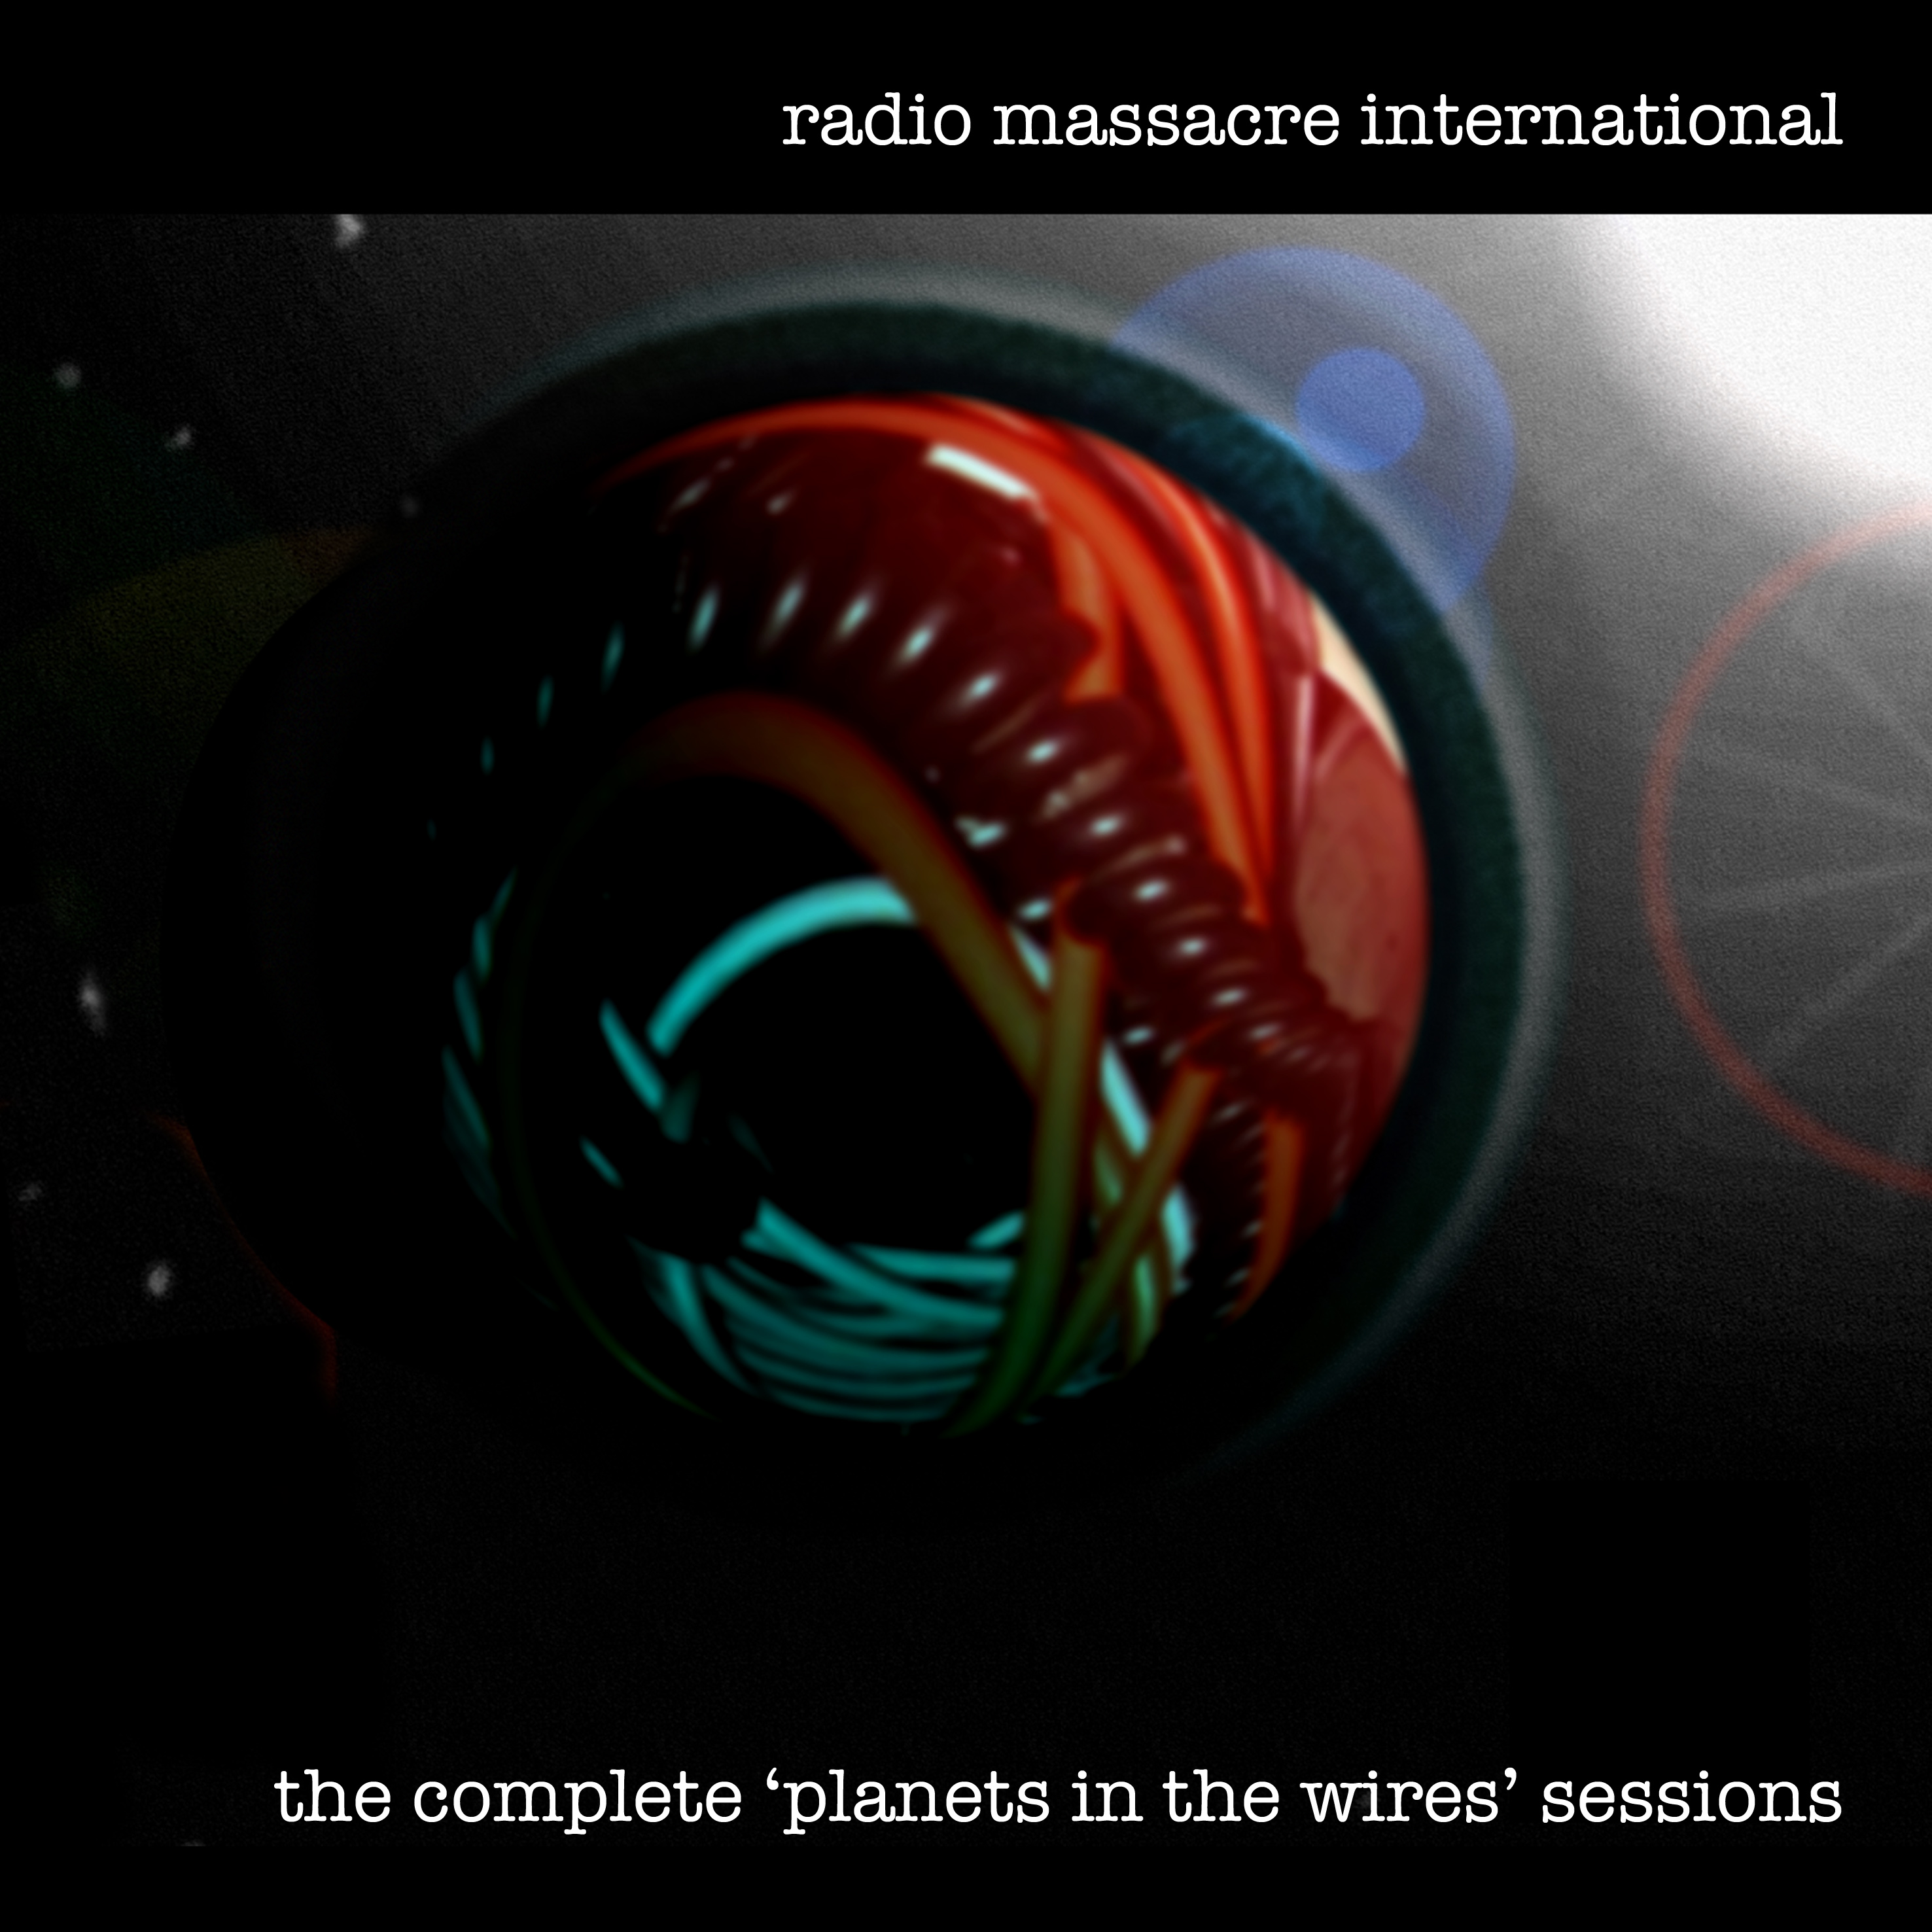 the complete planets in the wires sessions